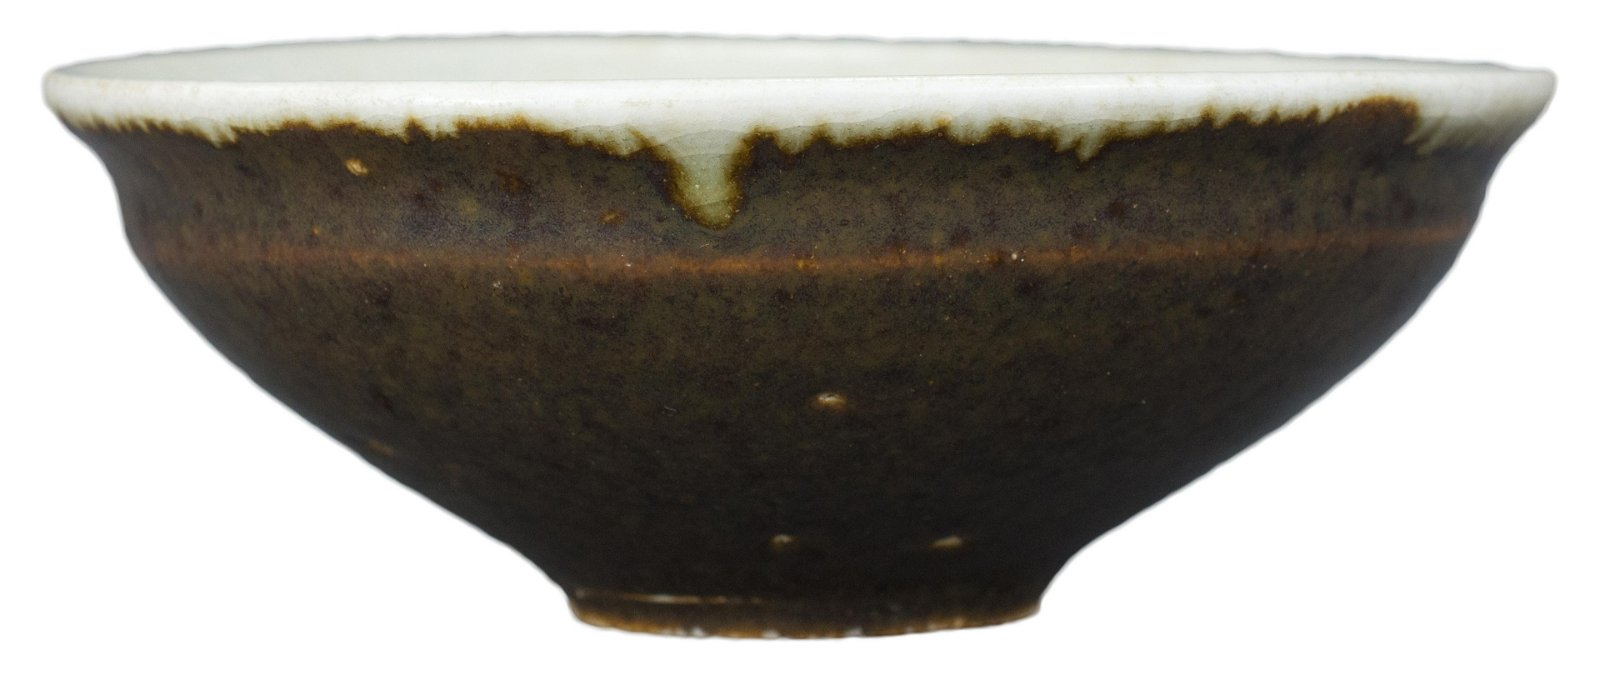 A Rare Chinese Glazed Porcelain Tea Bowl – Song